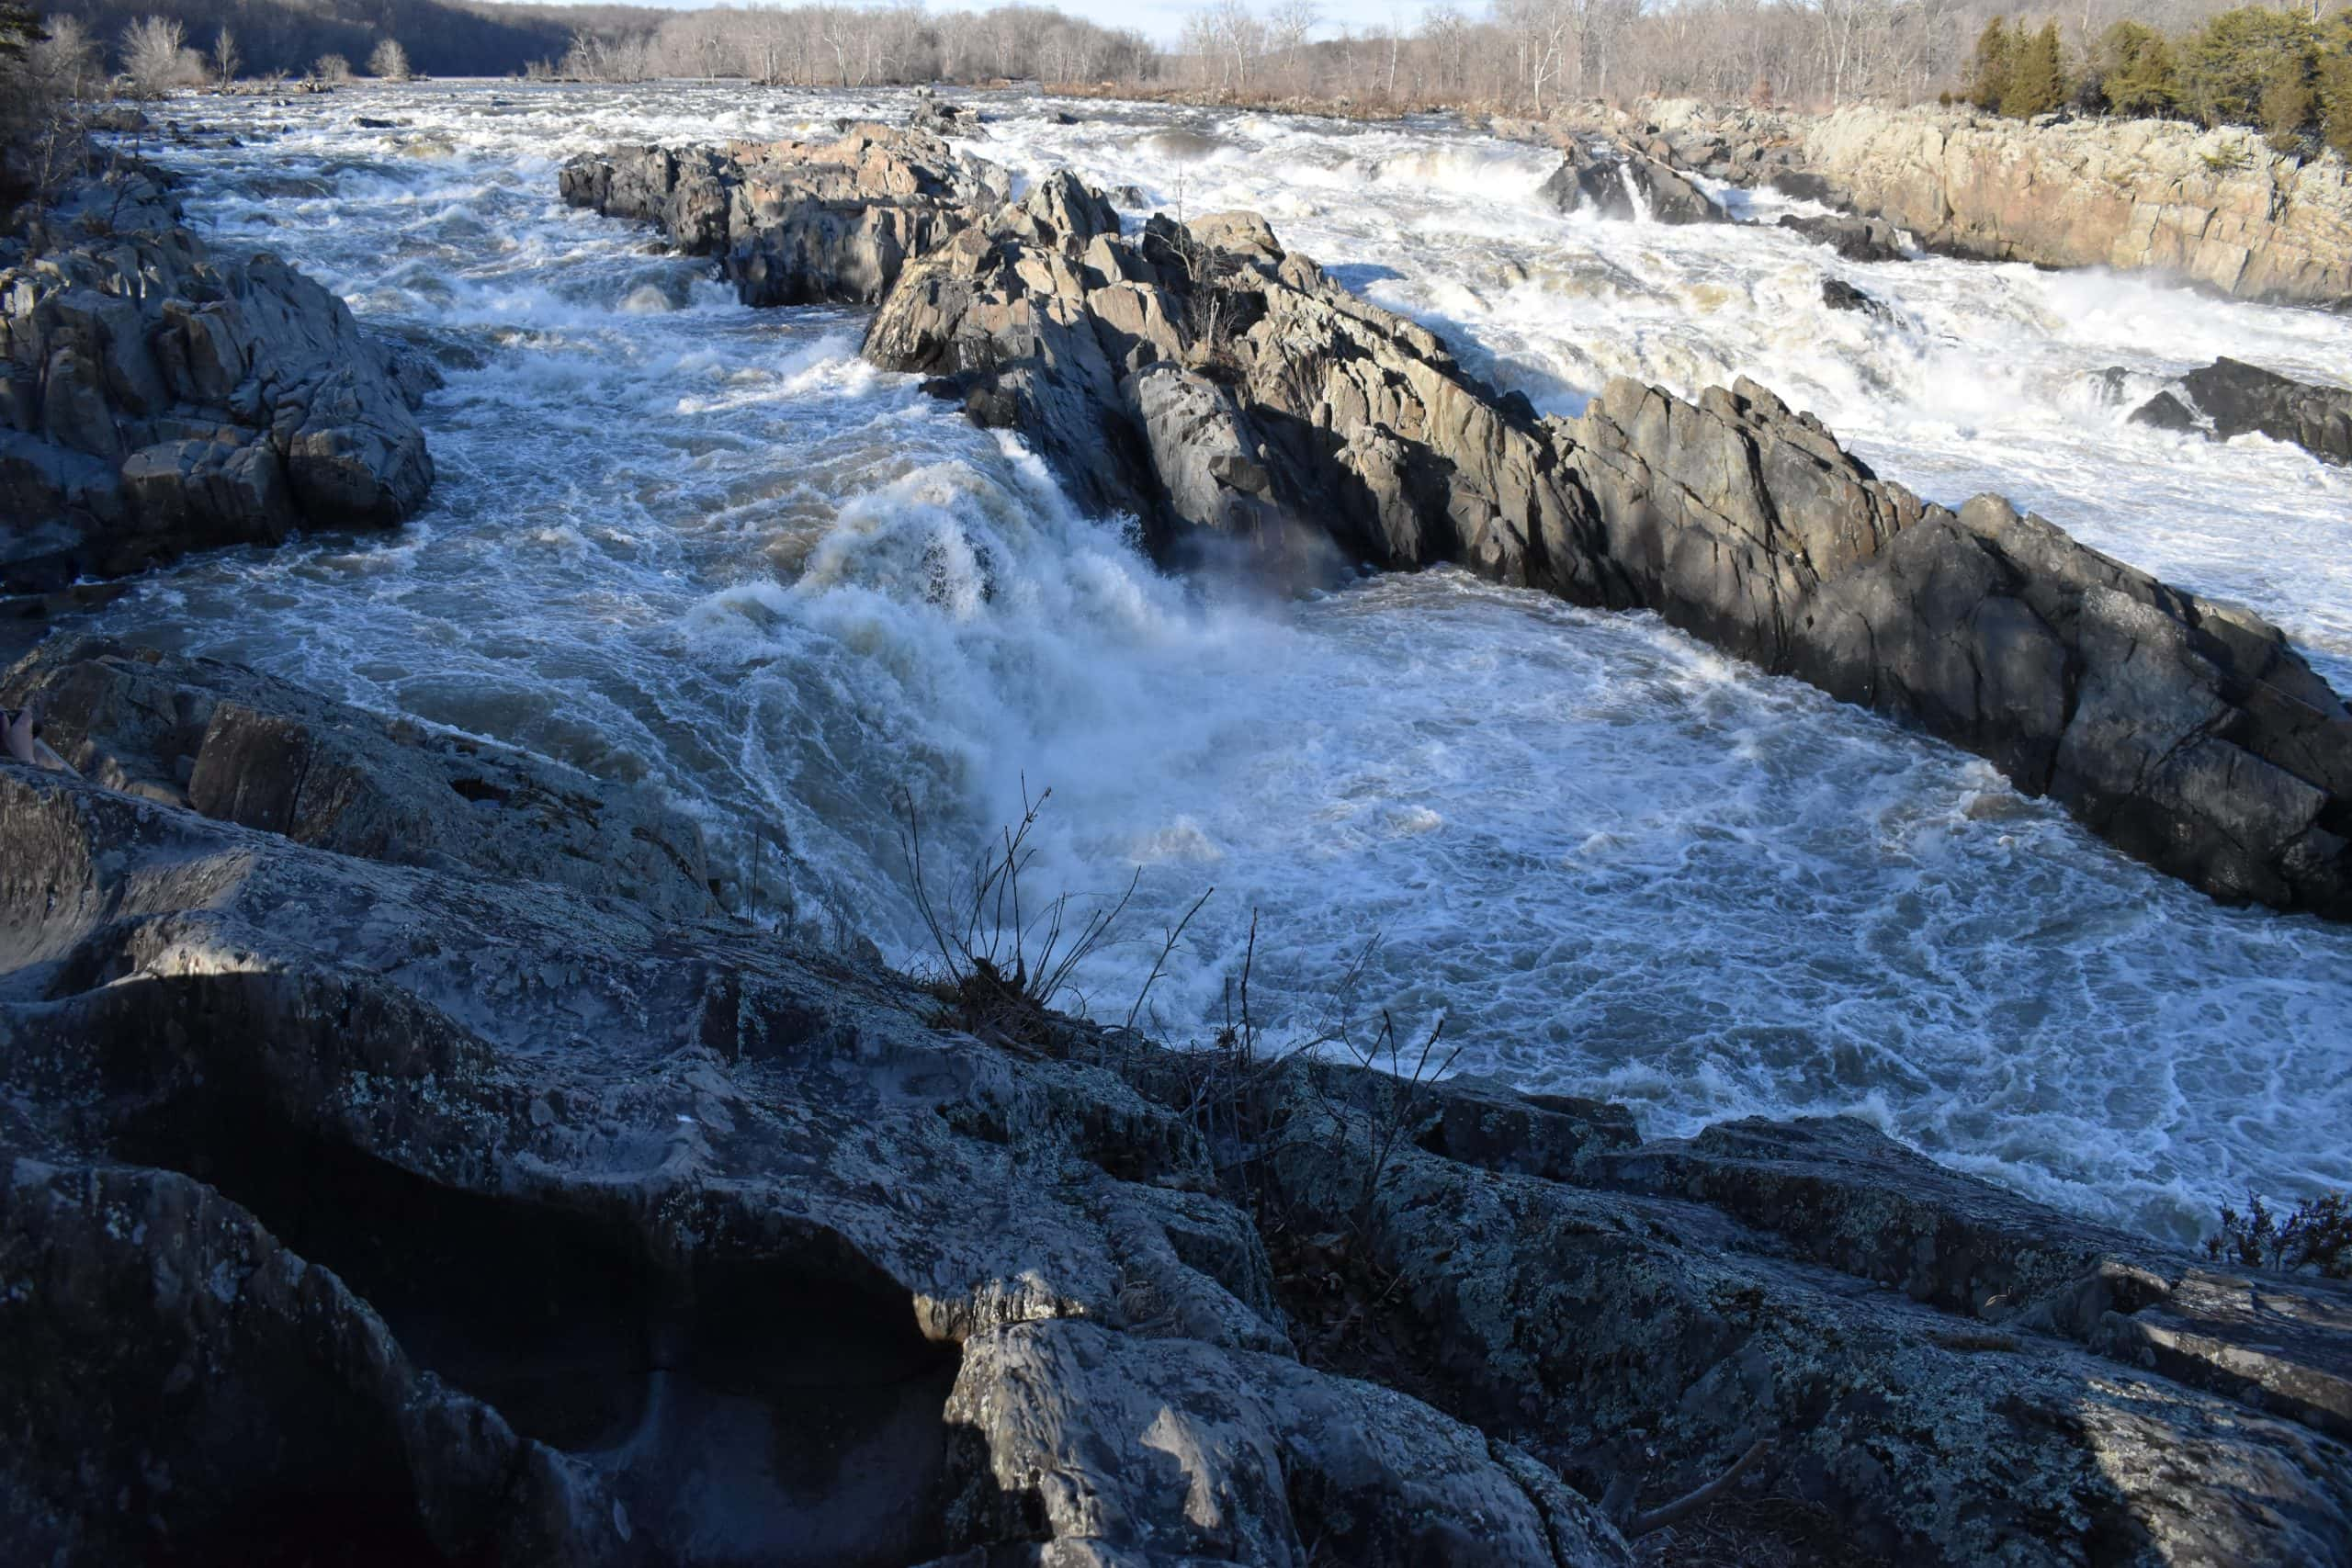 Road Trips From Roanoke - Harper's Ferry and Great Falls, Va - Great Falls